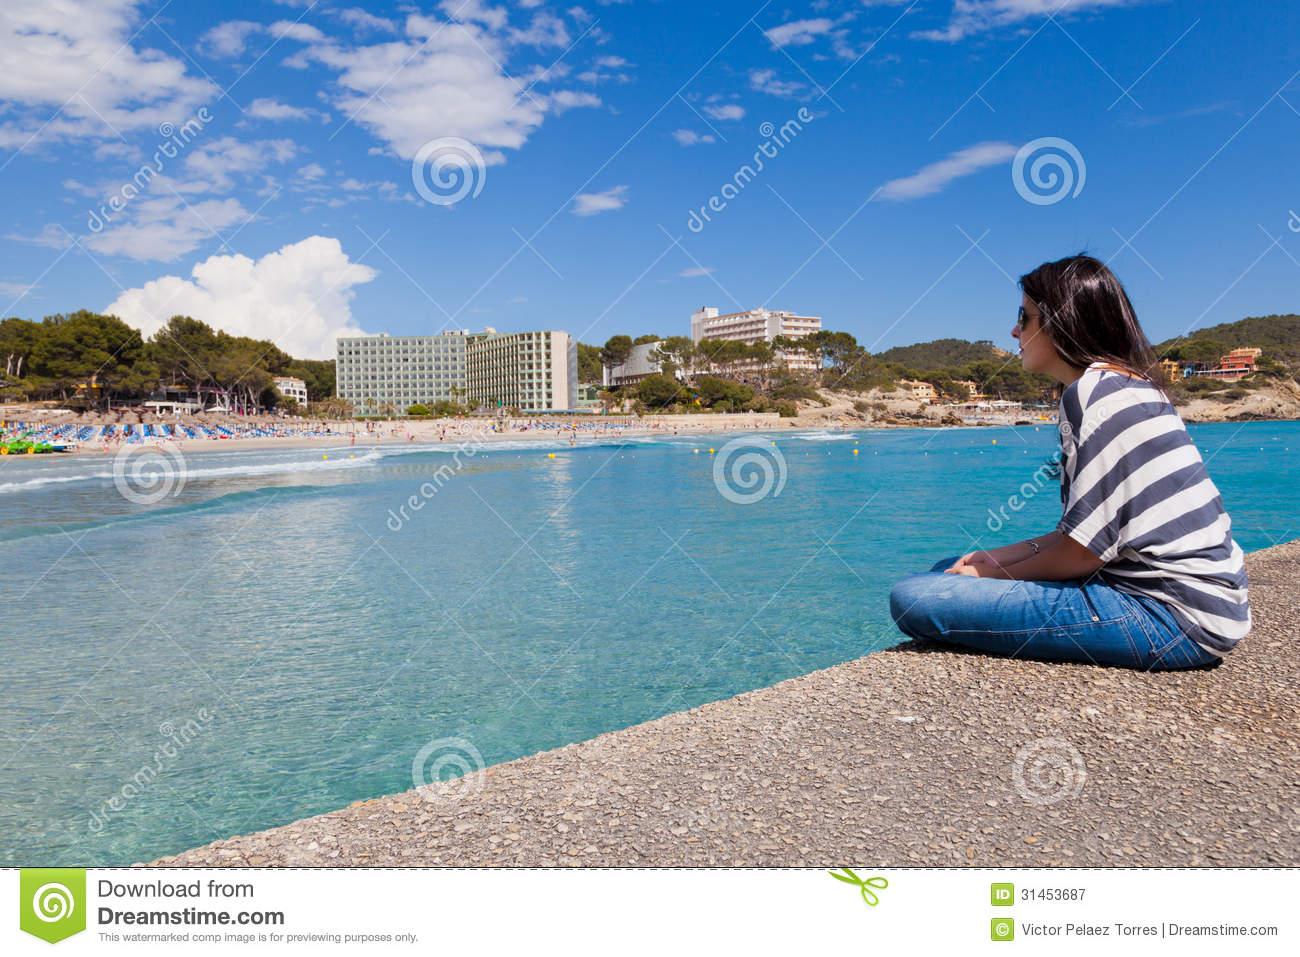 Paguera Spain  city images : Girl Looking at Paguera Beach, Mallorca, Spain.